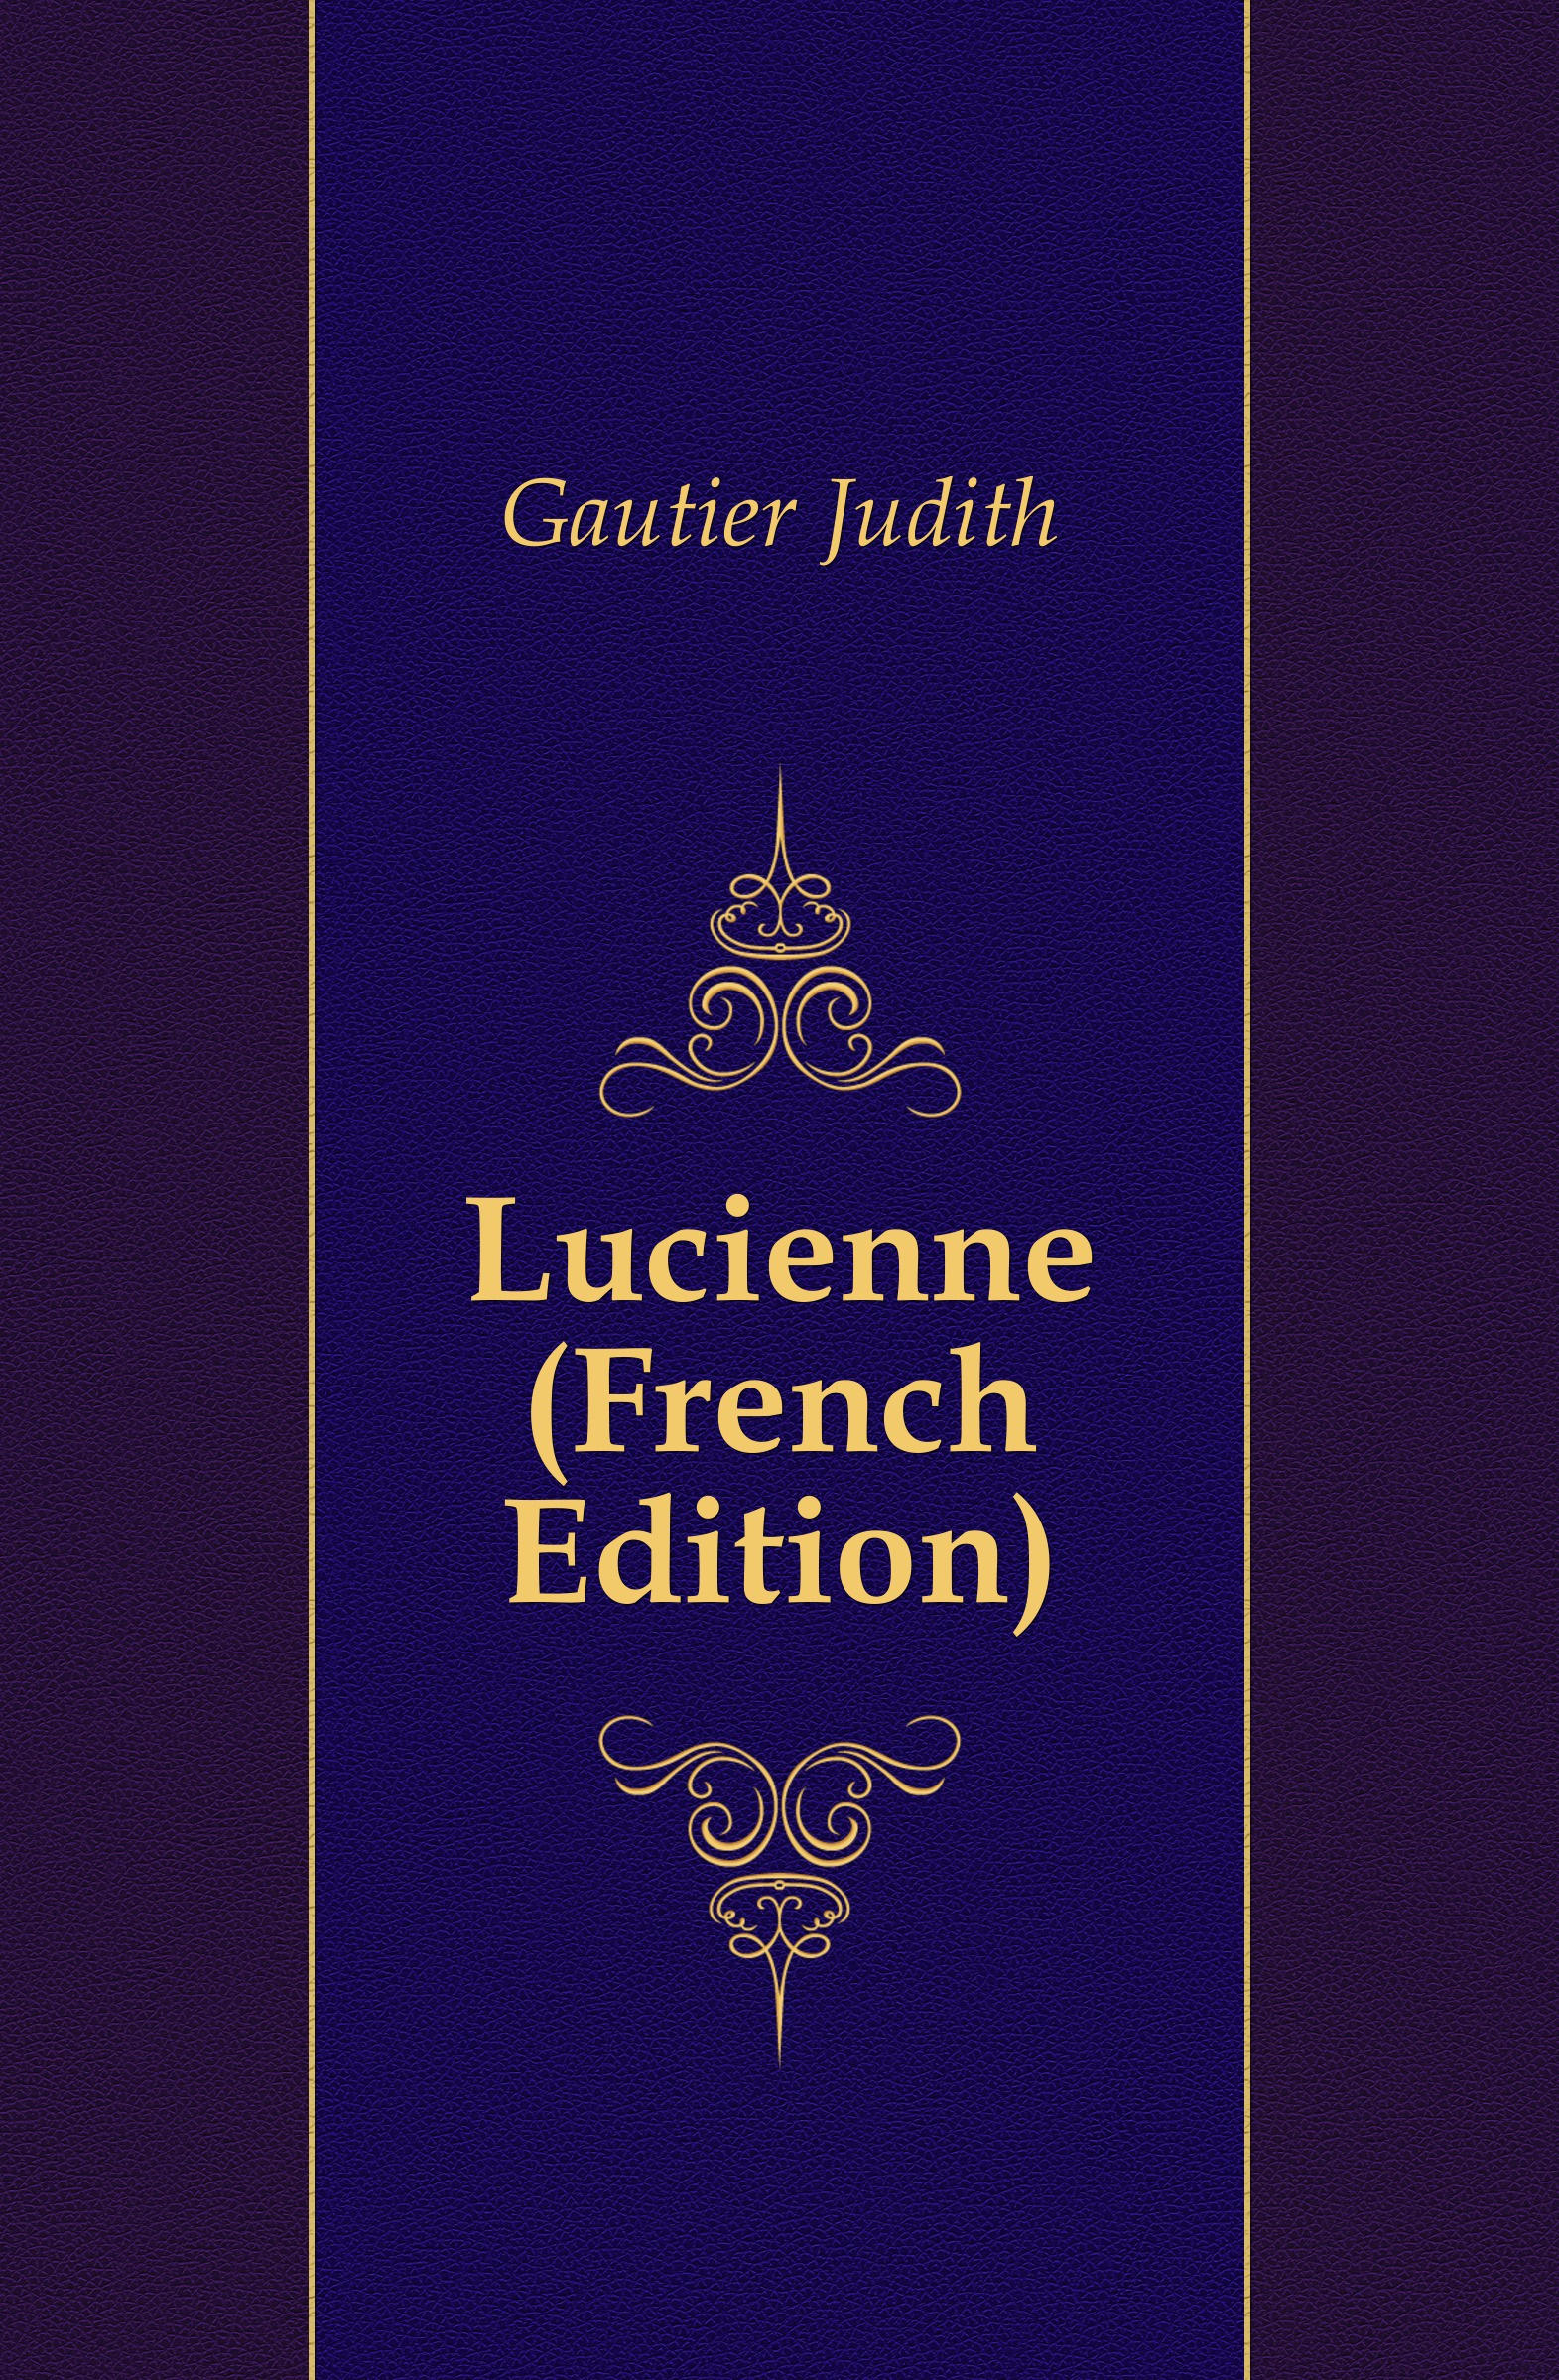 Gautier Judith Lucienne (French Edition) цена